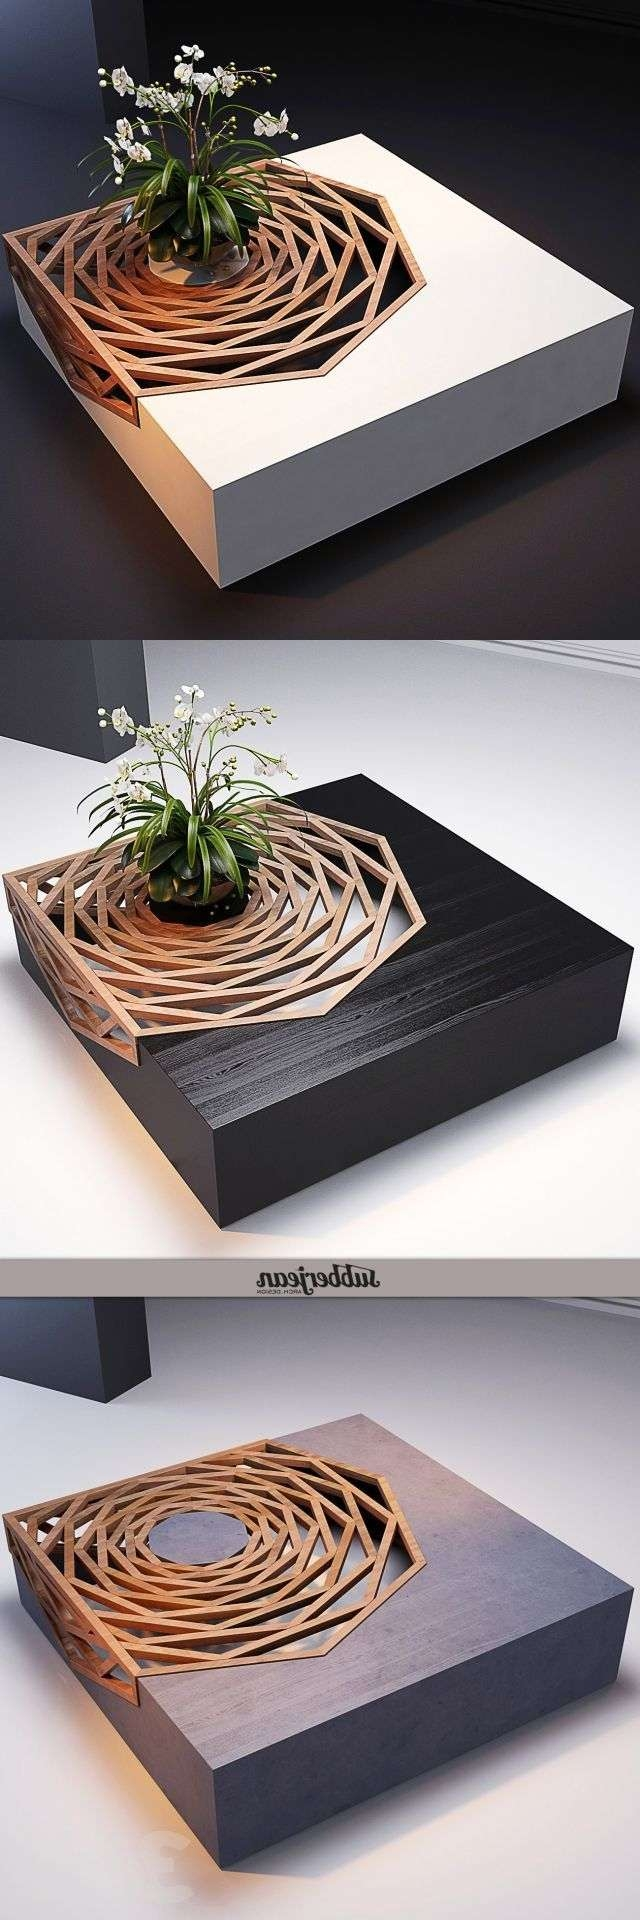 Coffee Table Throughout Trendy Stylish Coffee Tables (View 19 of 20)